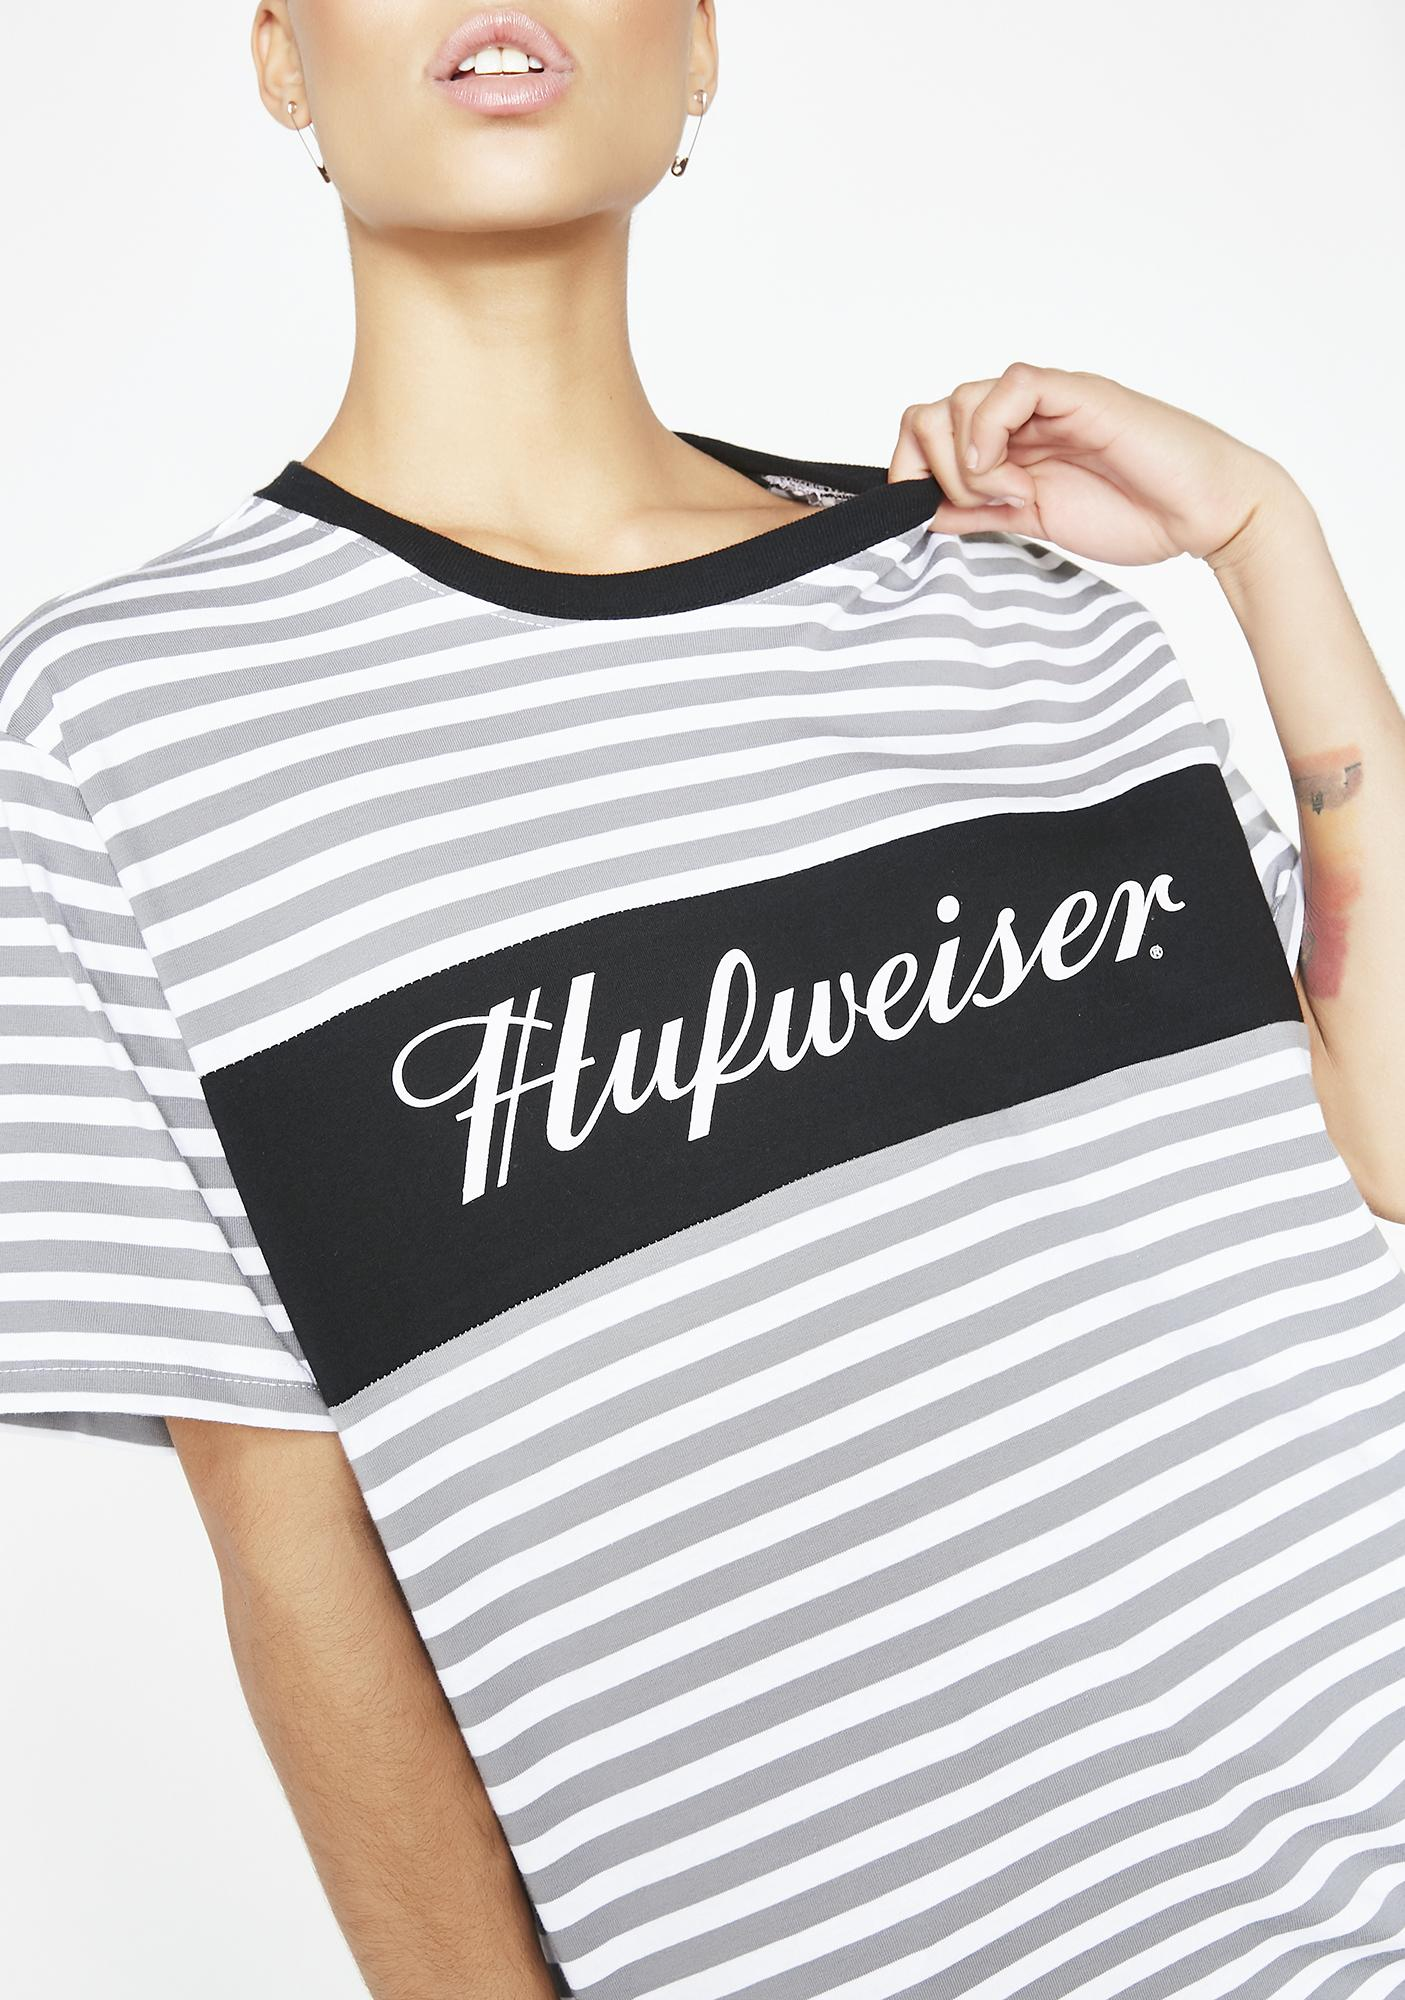 HUF Hufweiser Stripes Knit Shirt